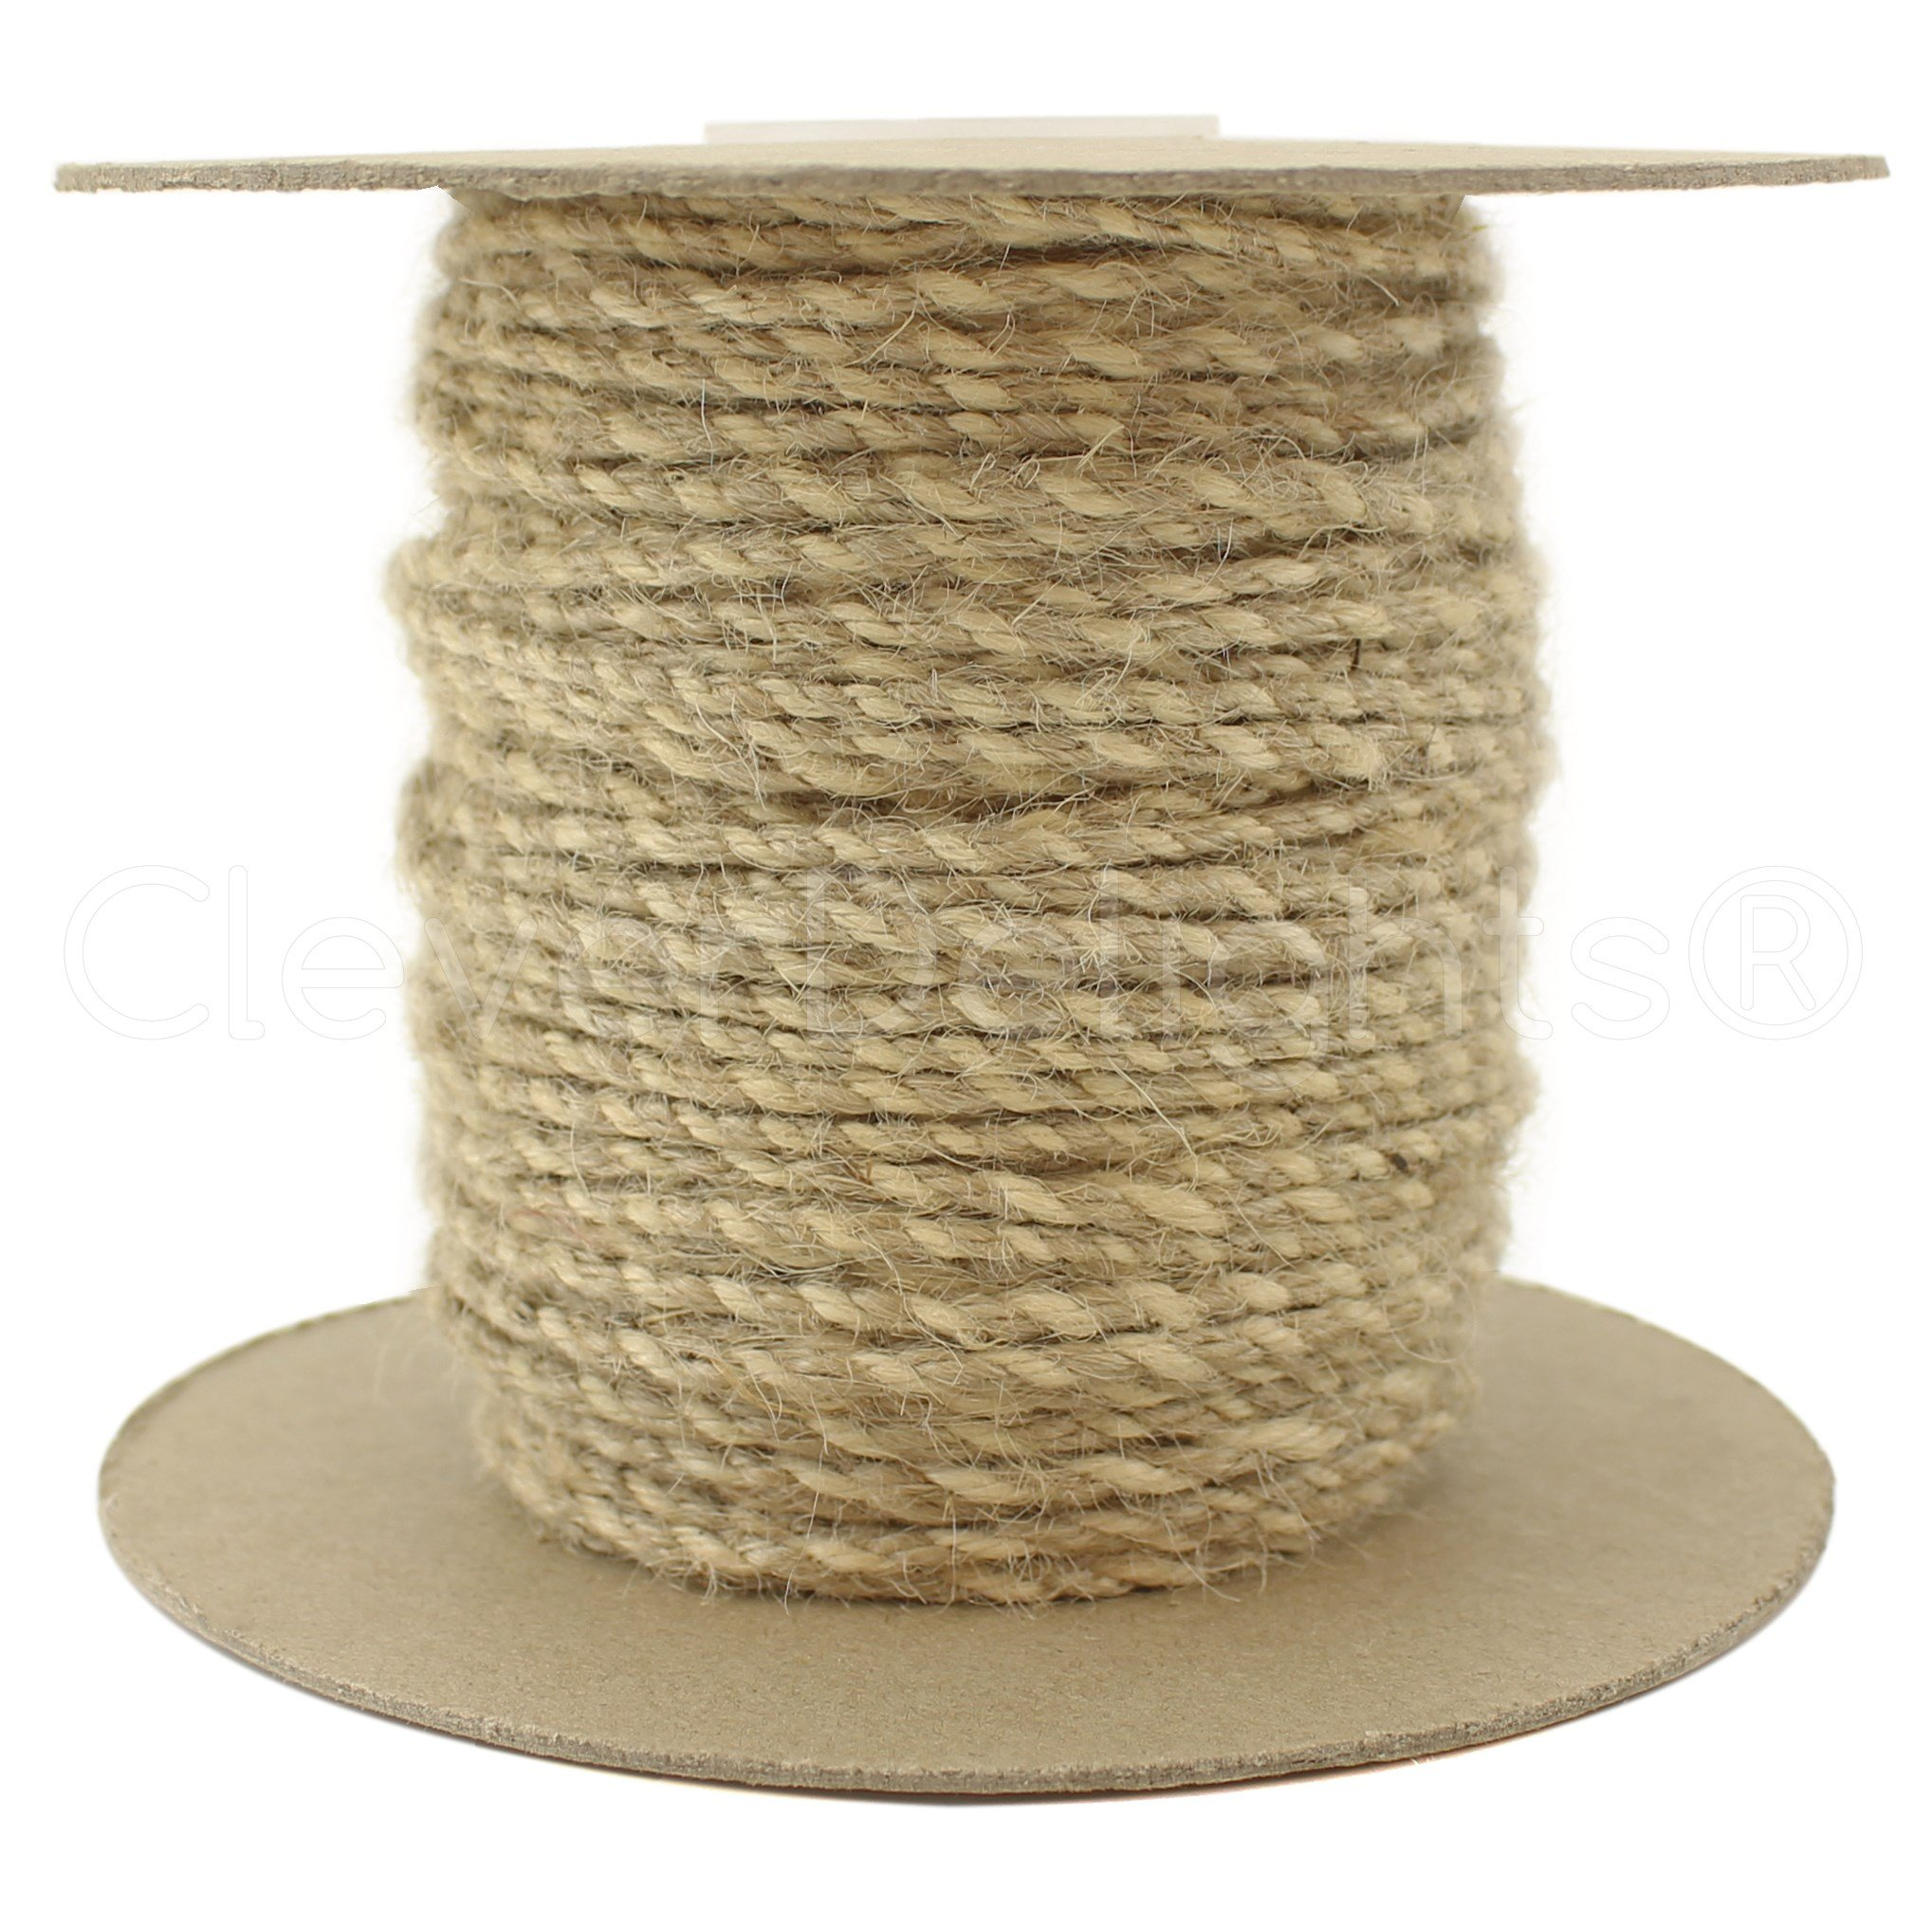 CleverDelights Jute Twisted Twine - 50 Yards - Natural and Ivory Color - 3mm Diameter - Eco-Friendly Natural Jute Rope String by CleverDelights